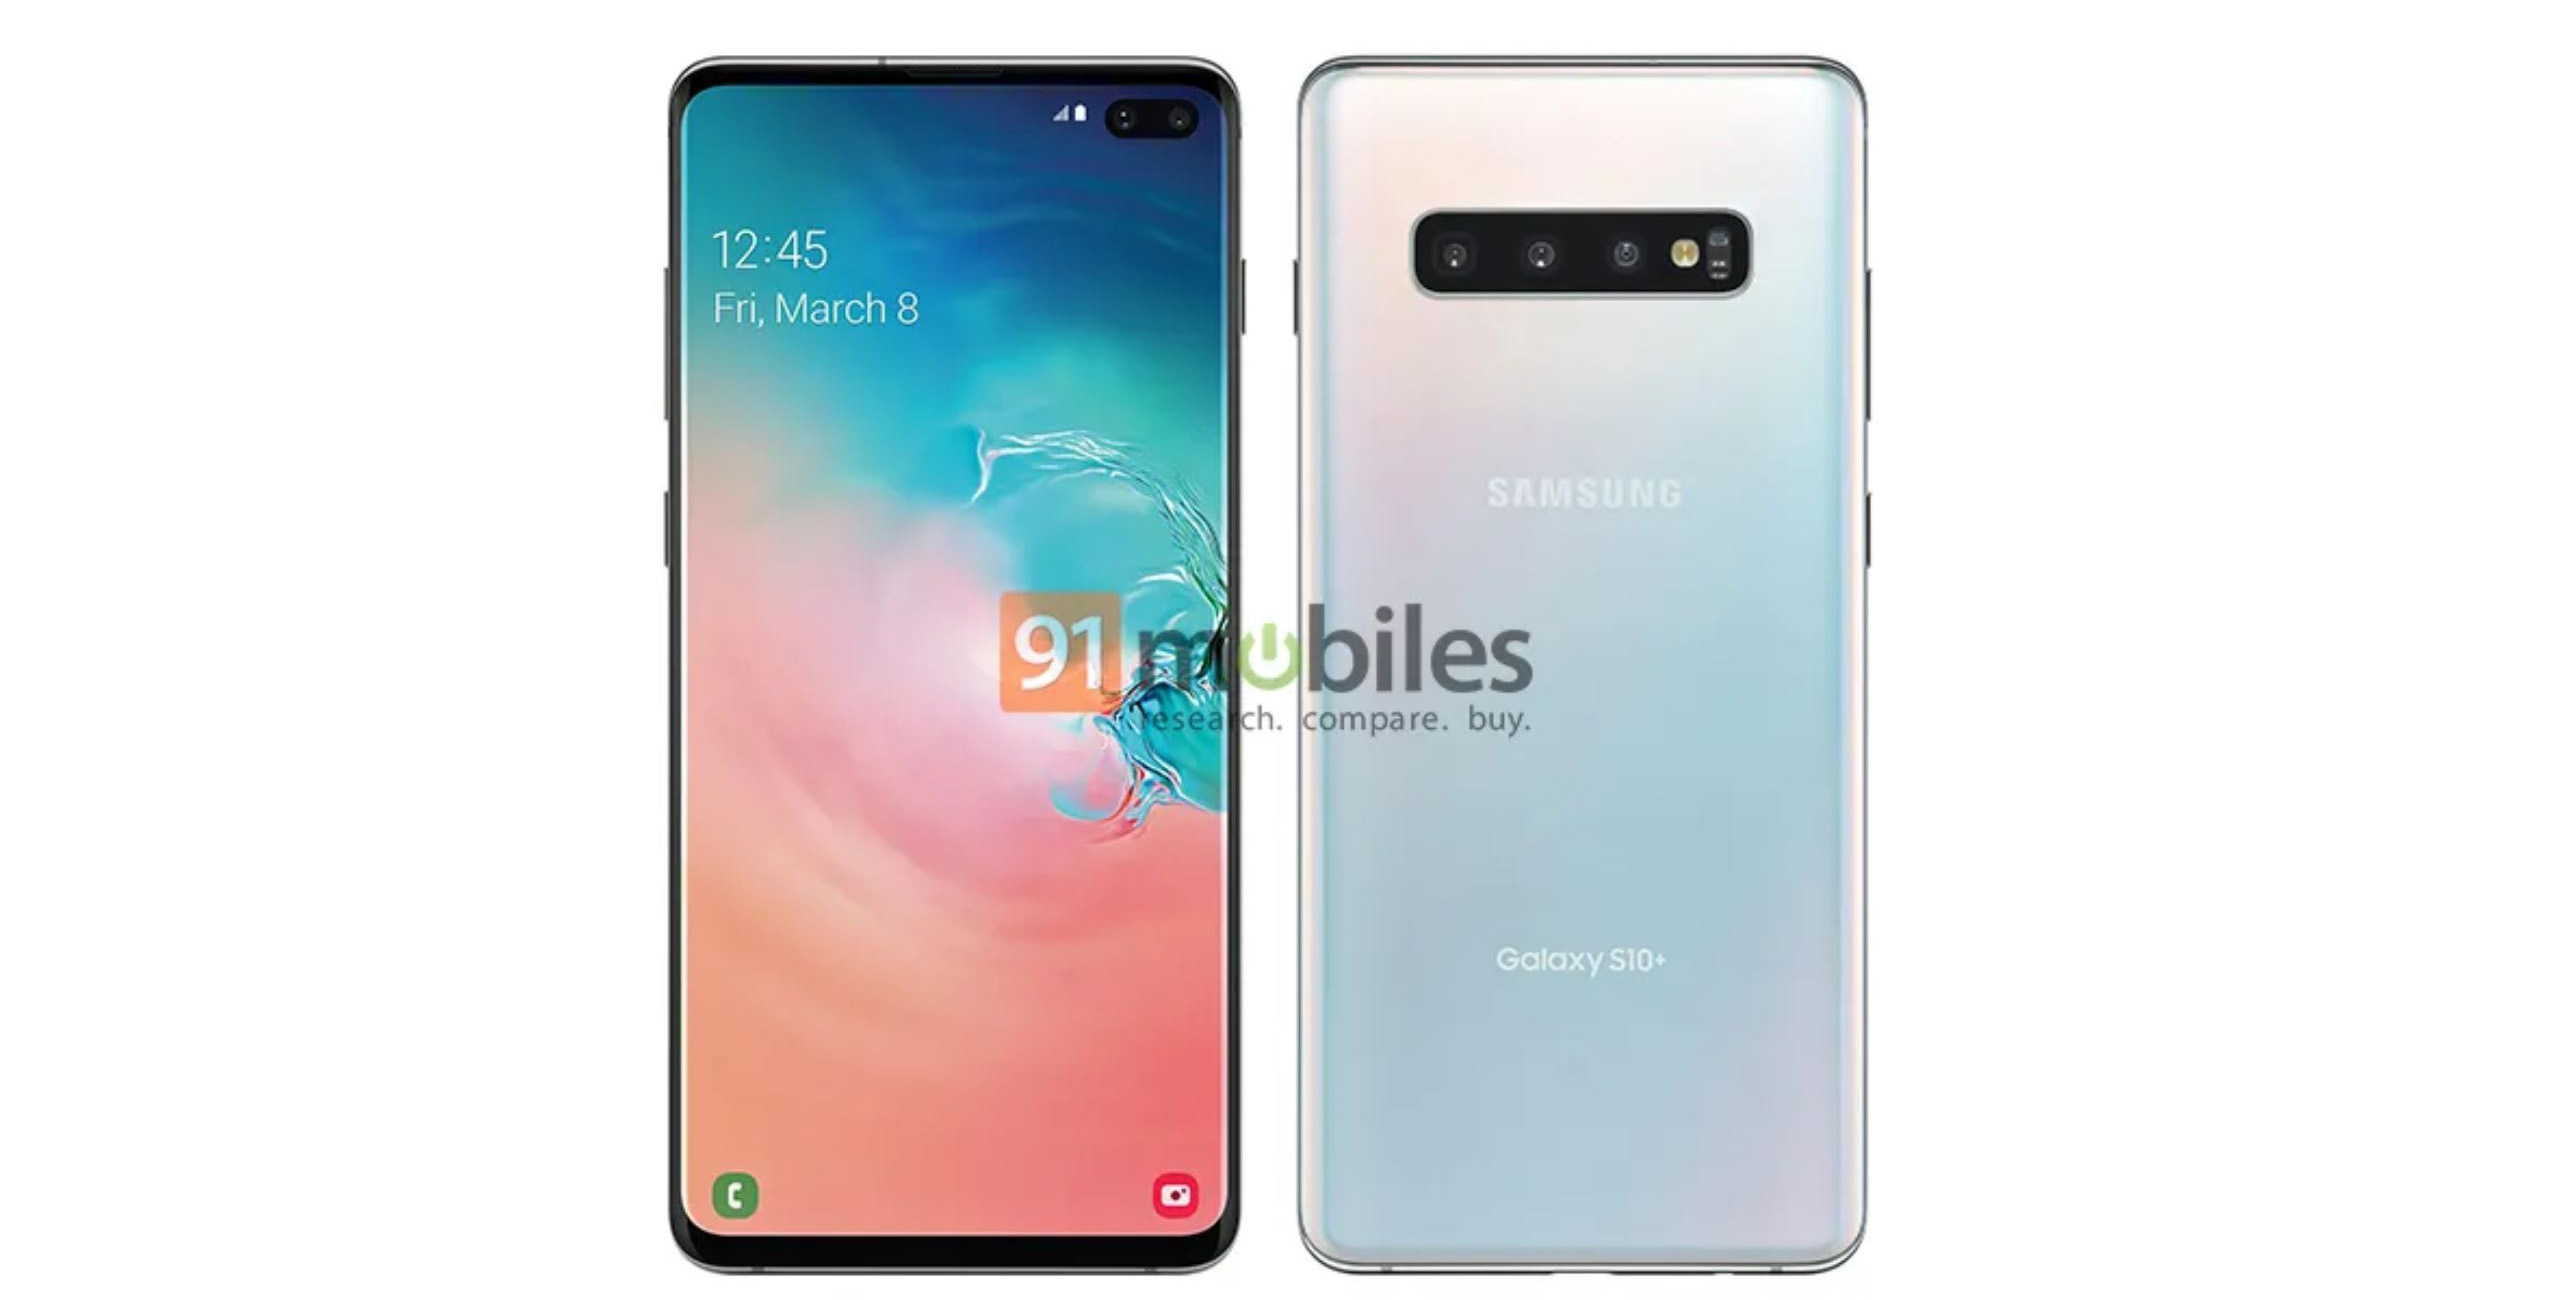 Here are the Galaxy S10+, Galaxy Note 10, Huawei P30 and